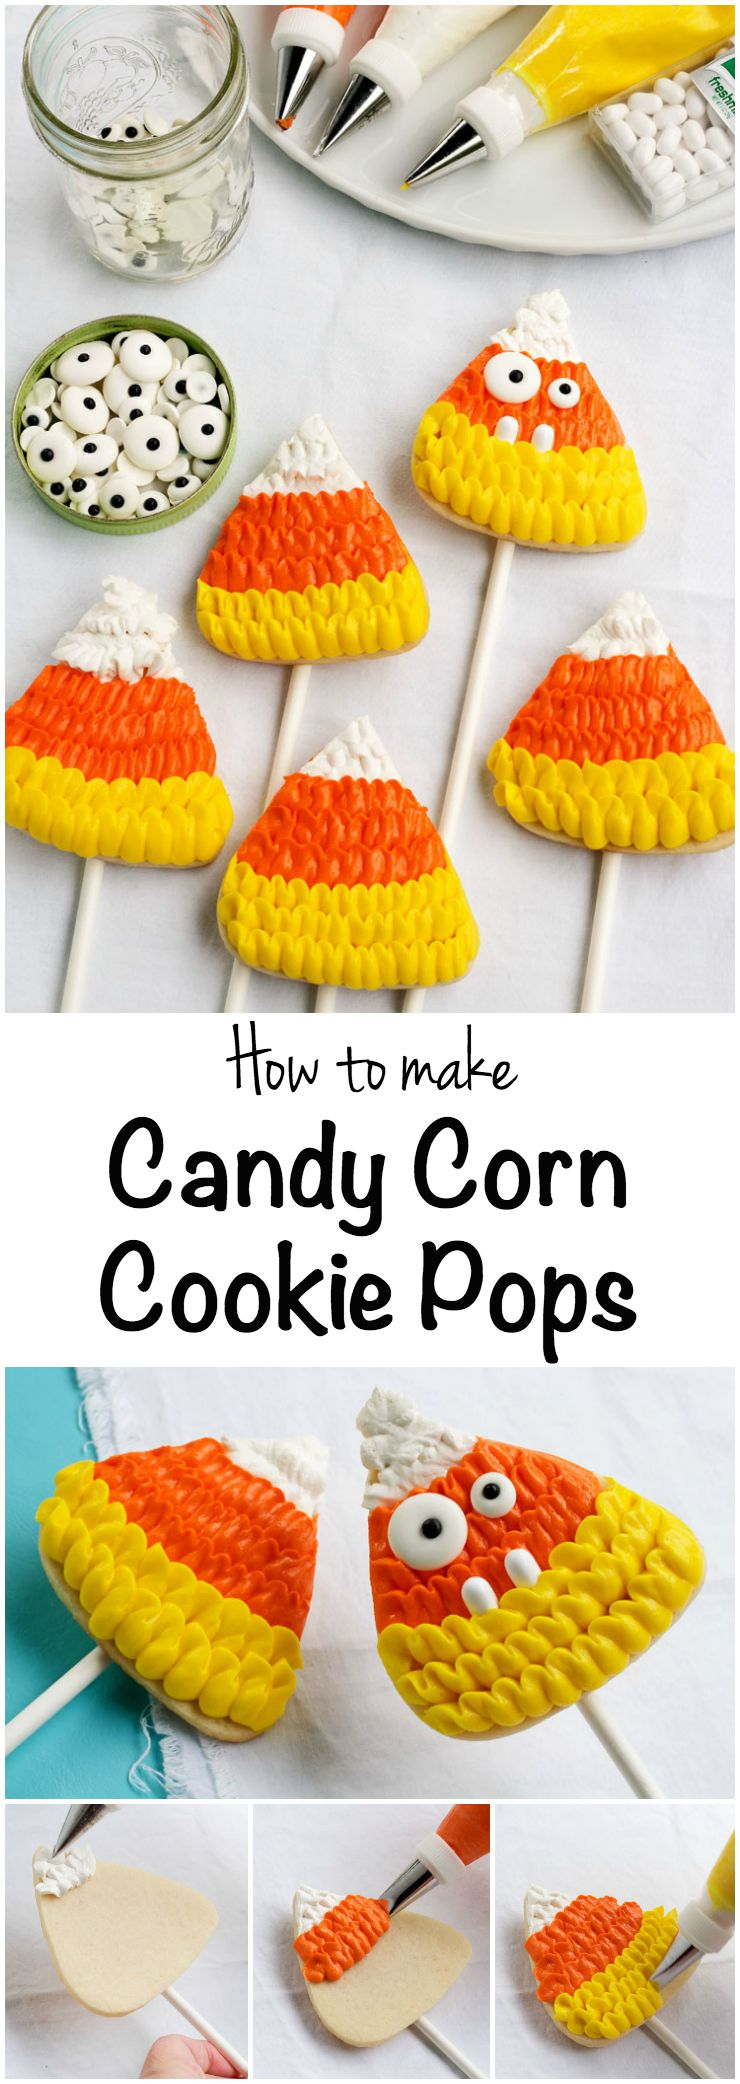 How to Make Cute Candy Corn Cookie Pops | The Bearfoot Baker